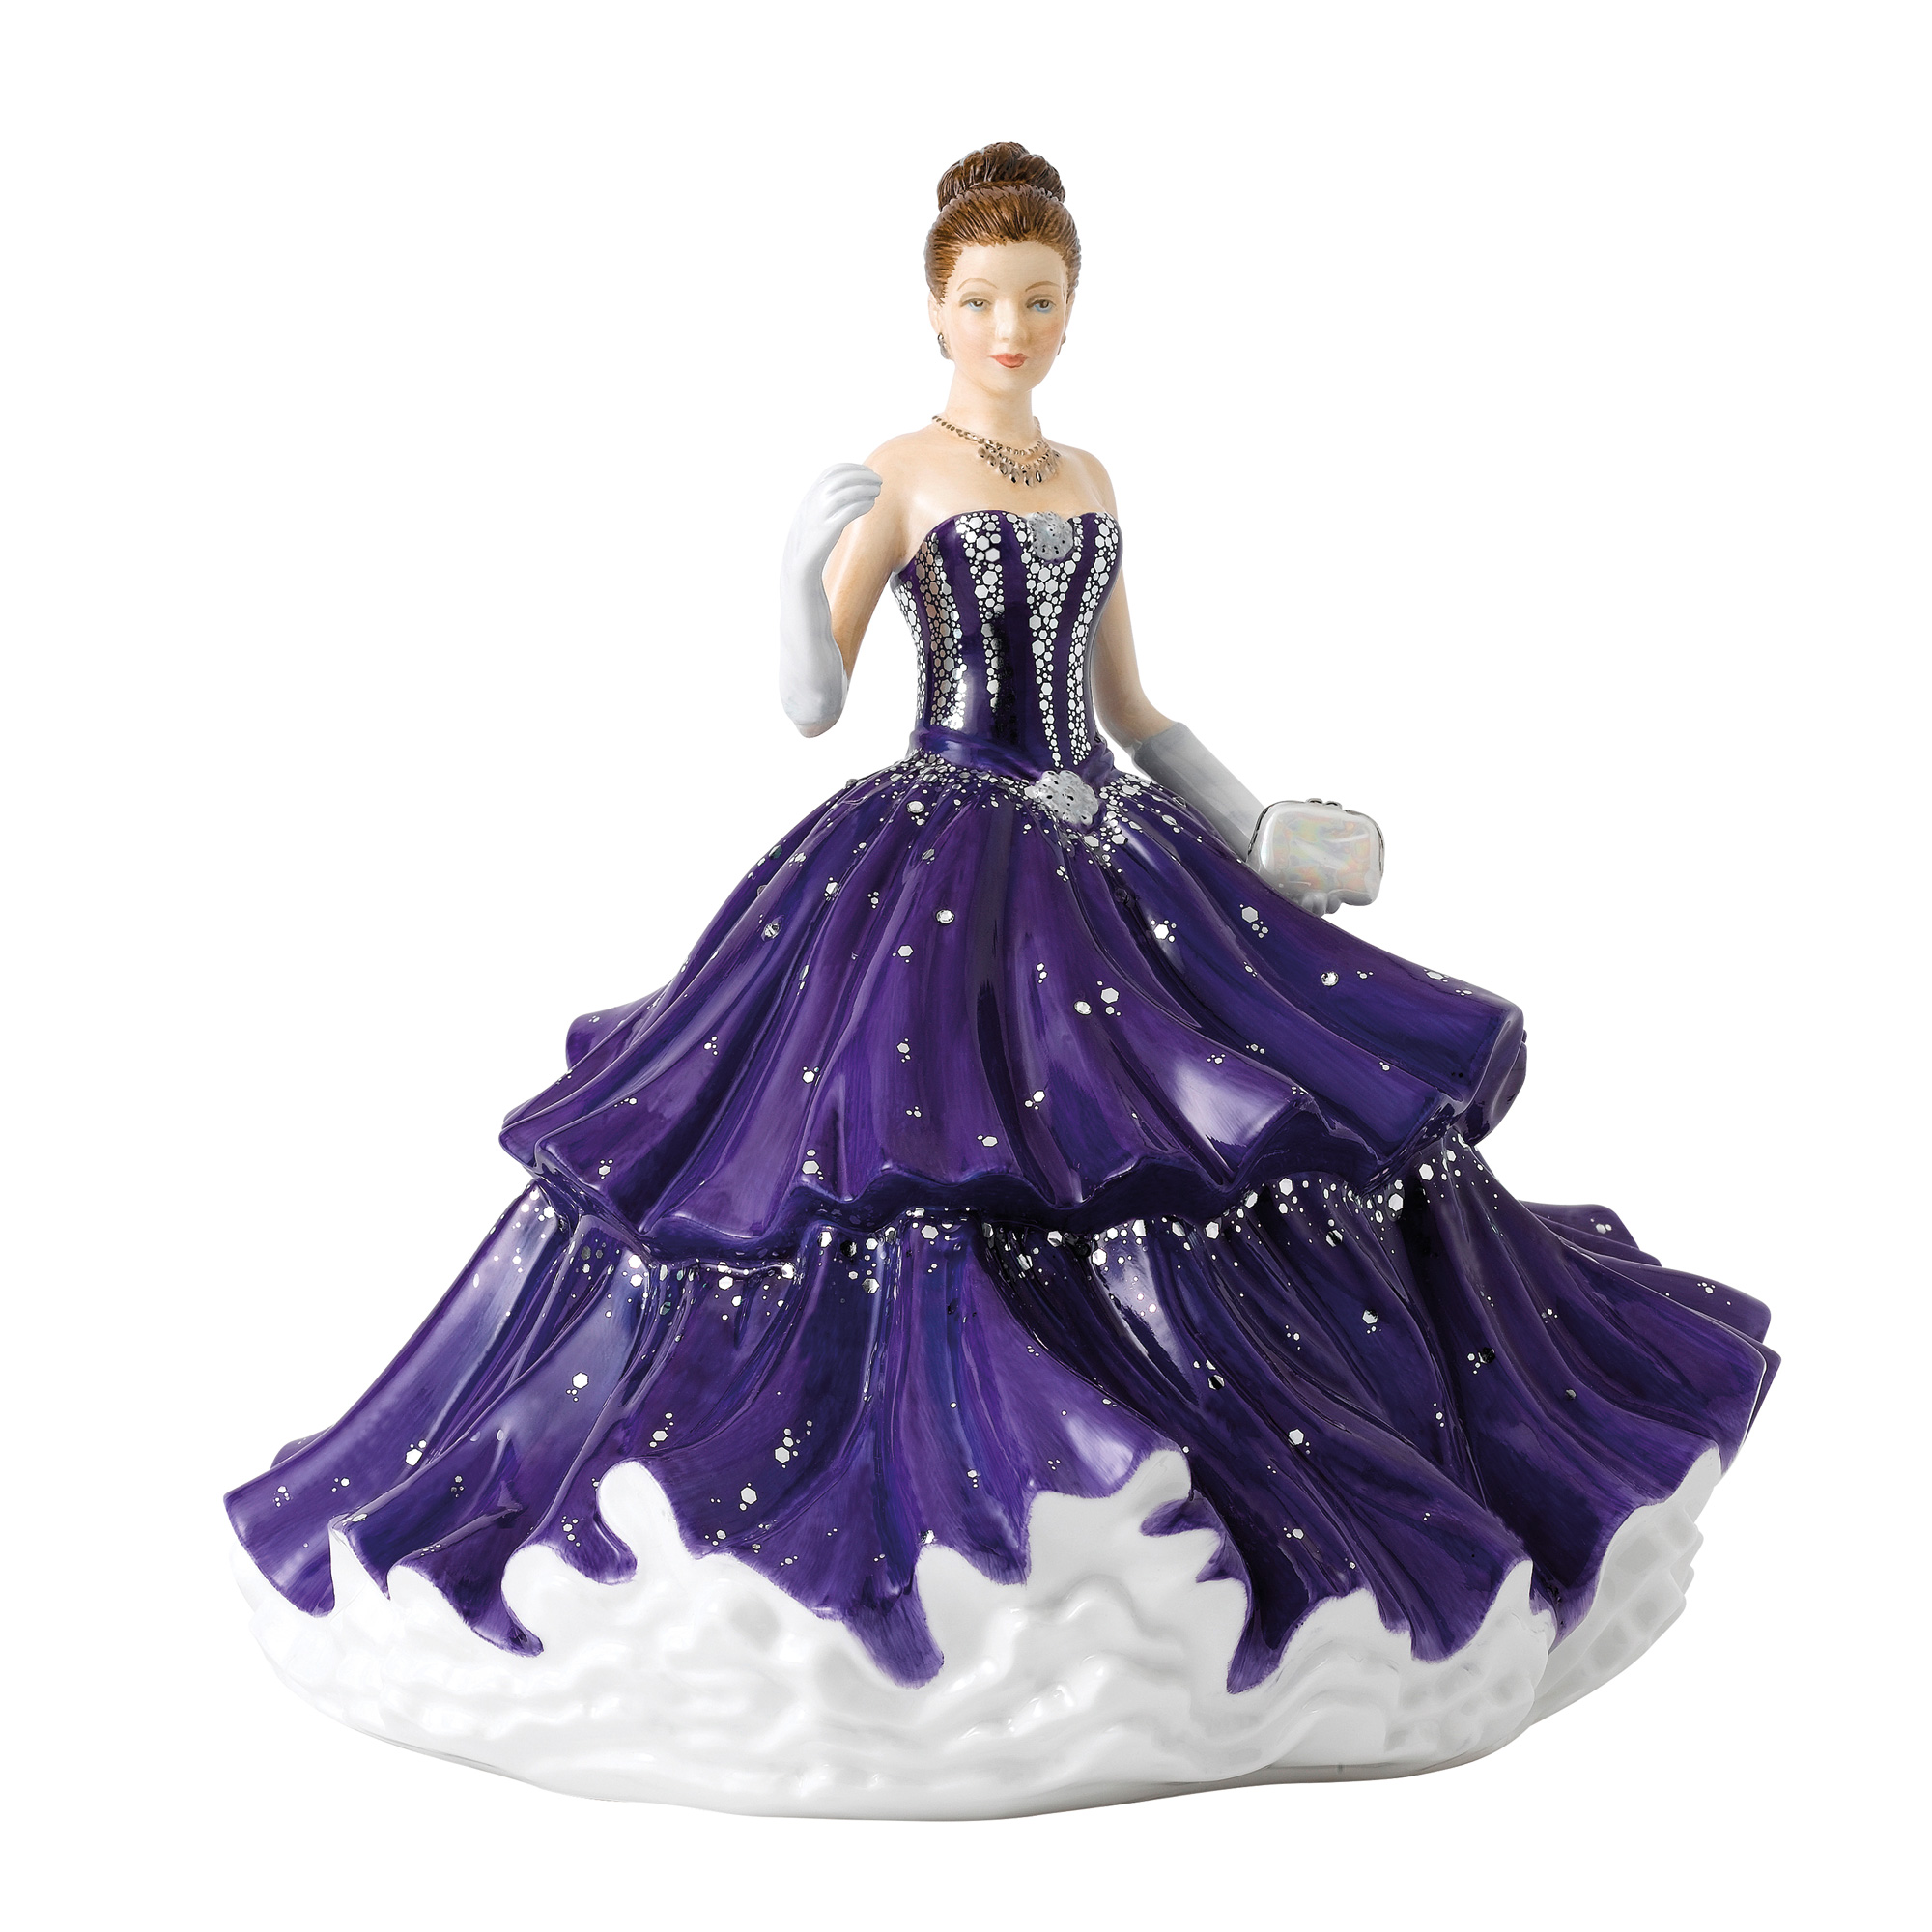 Graceful Promenade HN5833 - Royal Doulton Figurine